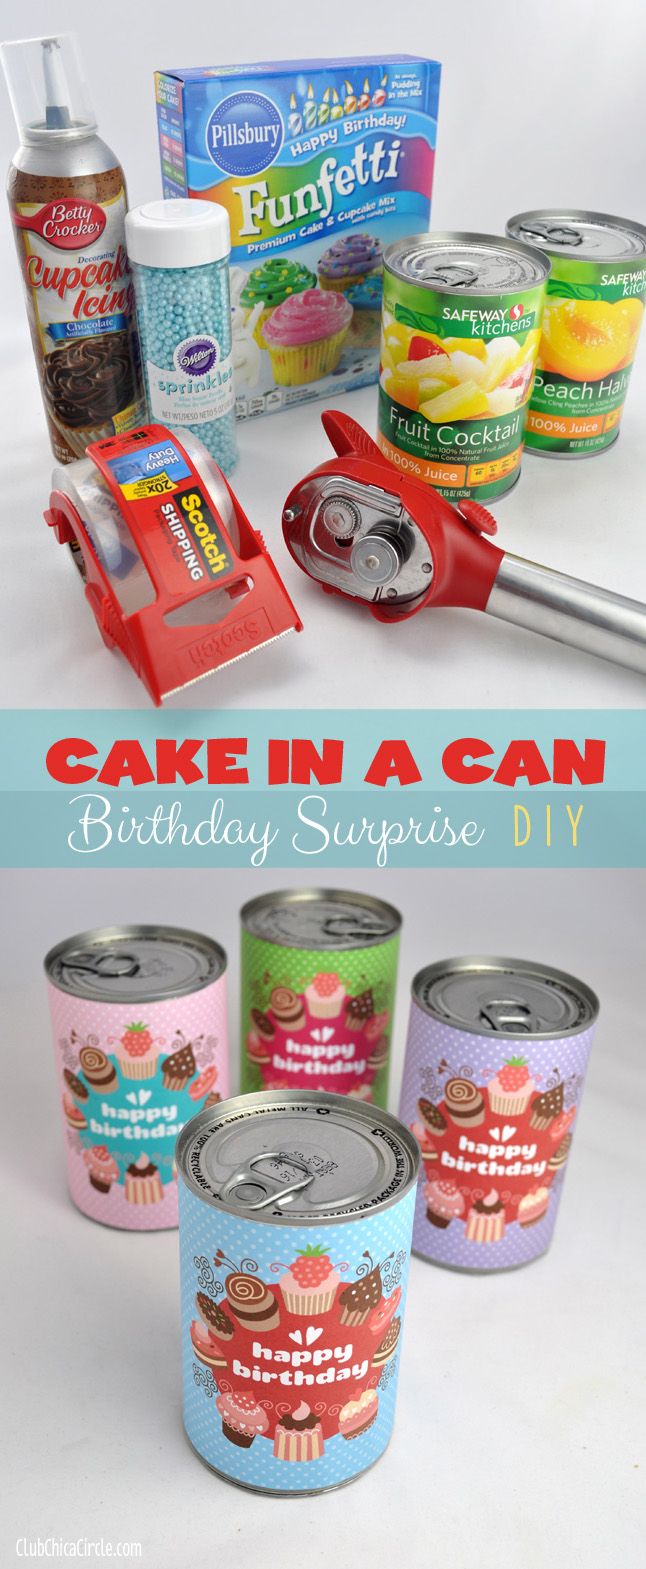 Fabulous Birthday Cake In A Can Cute Diy Projects Funny Birthday Cards Online Unhofree Goldxyz